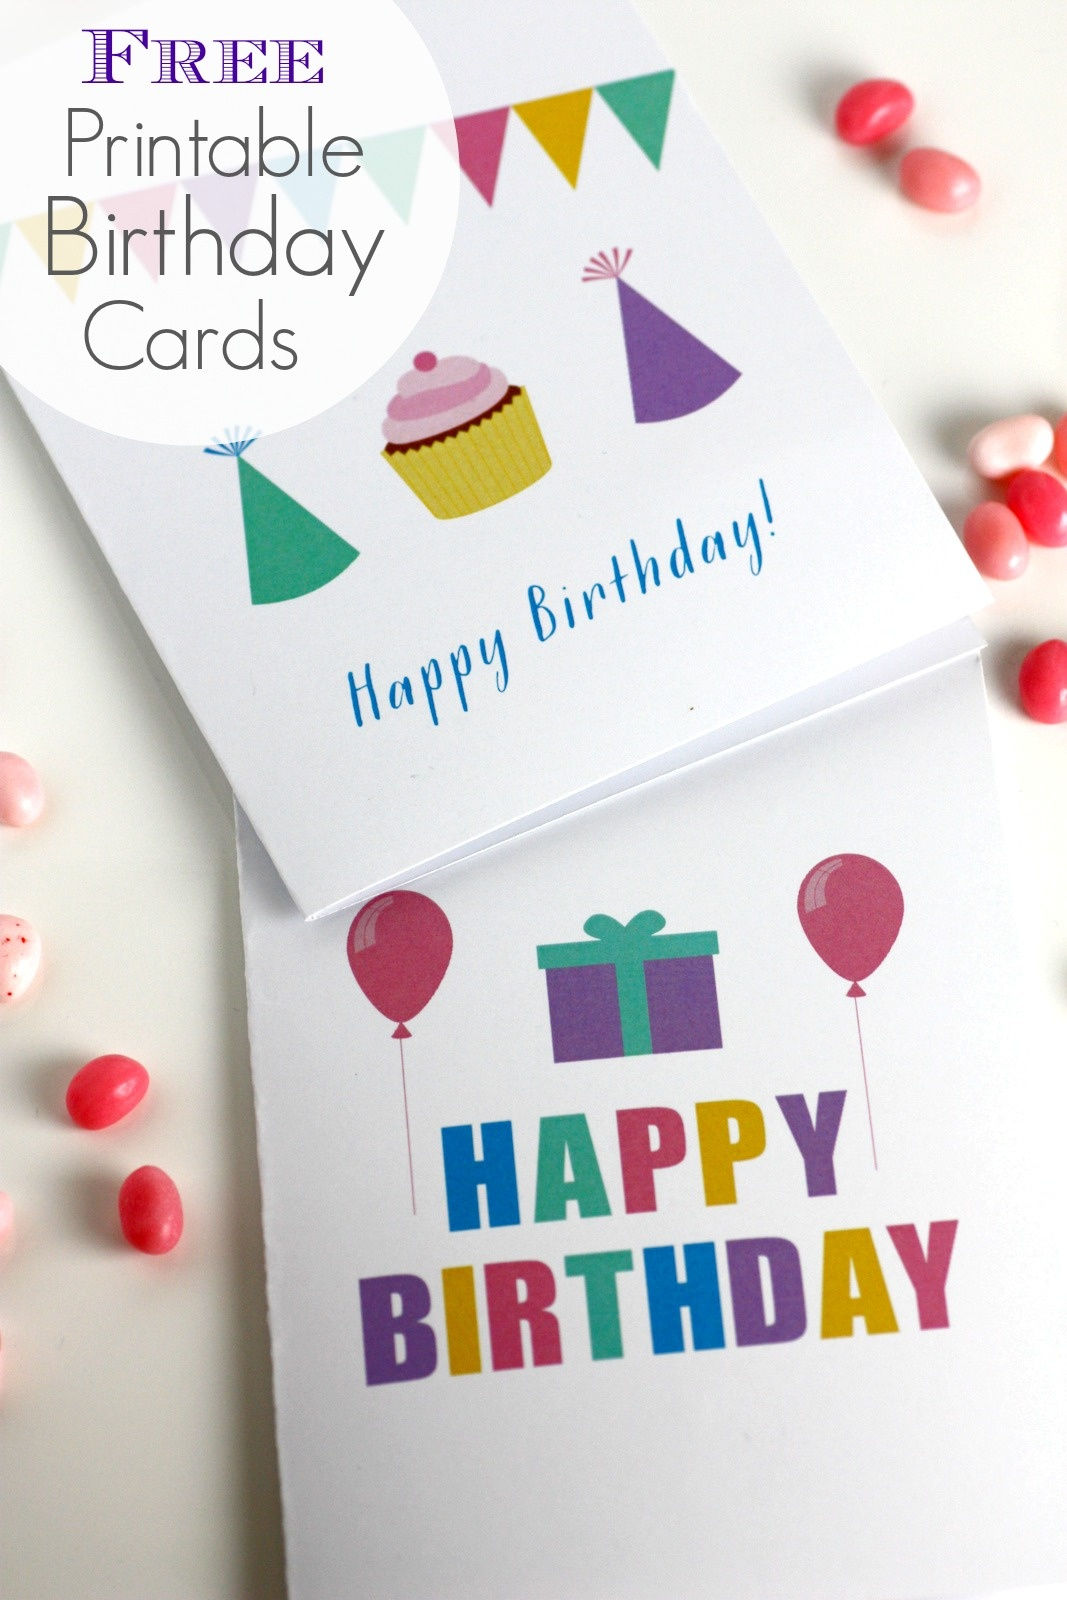 Free Printable Blank Birthday Cards | Catch My Party - Free Printable Birthday Cards